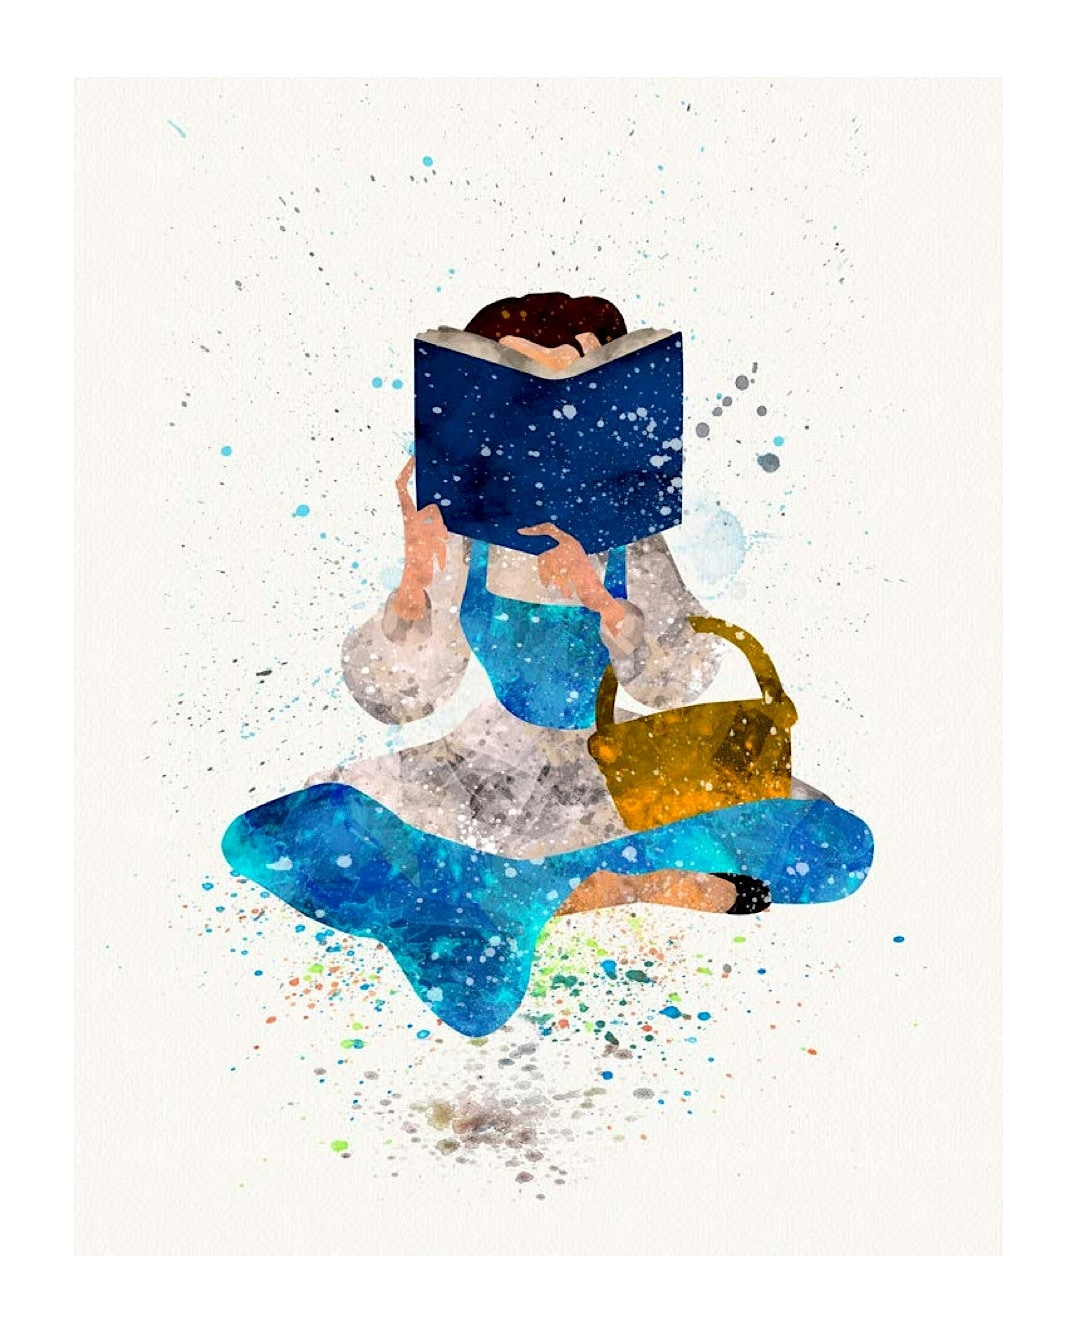 Belle reading a book - best read posters